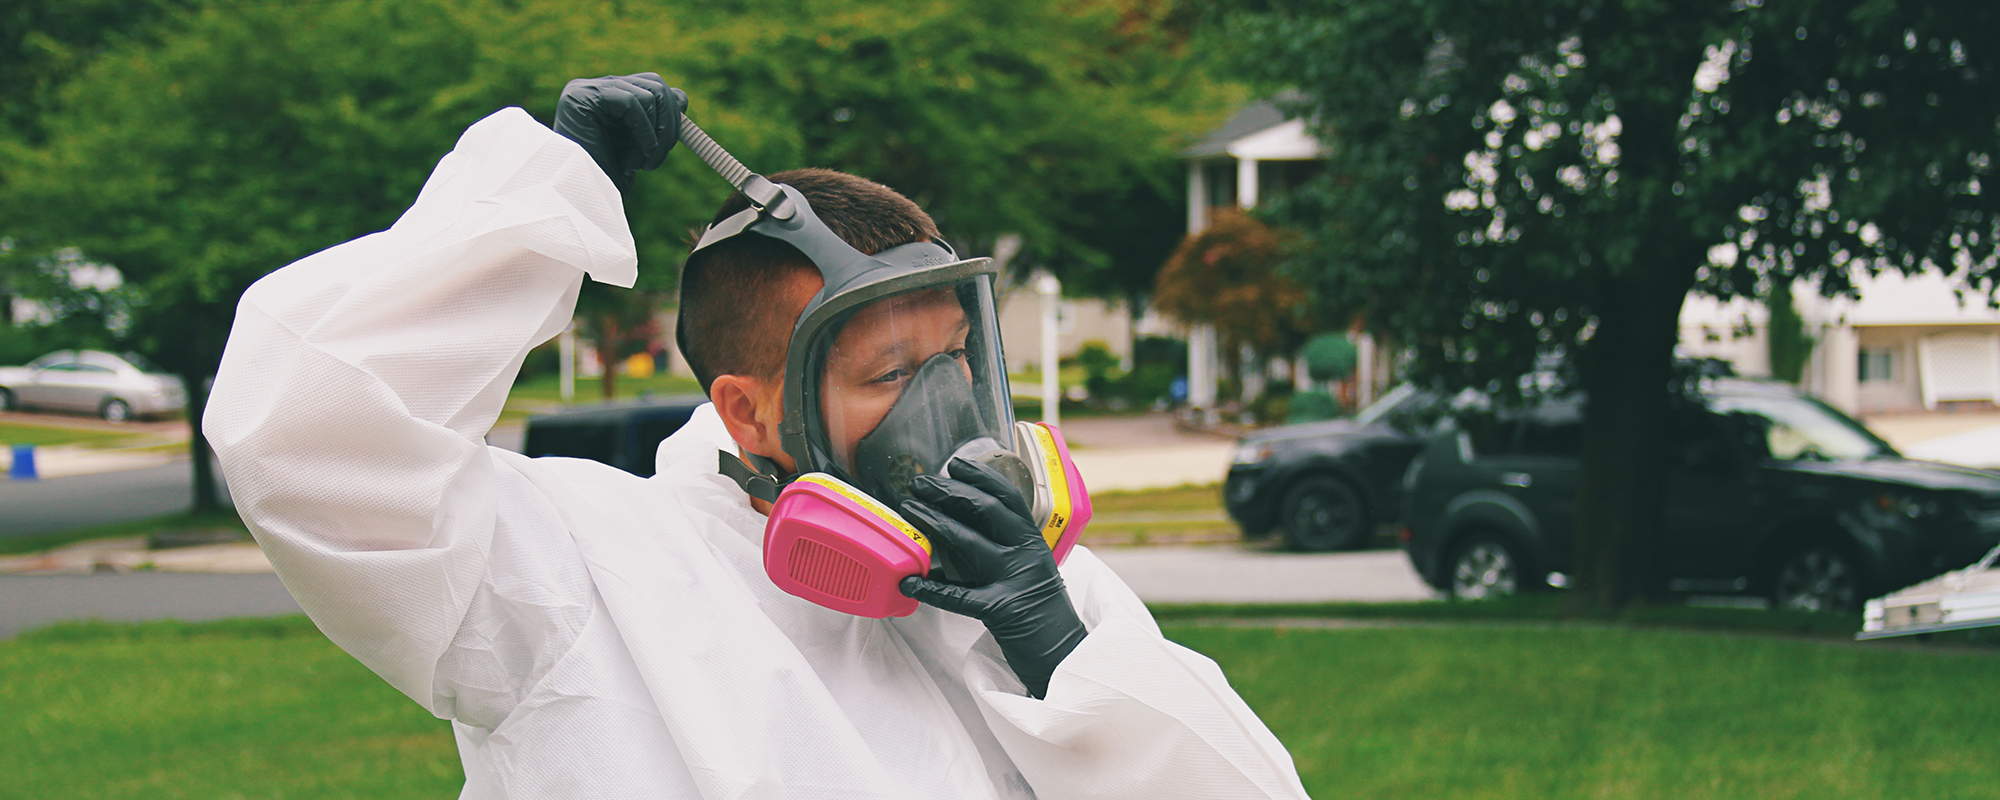 Pine Valley NJ mold removal and mold testing